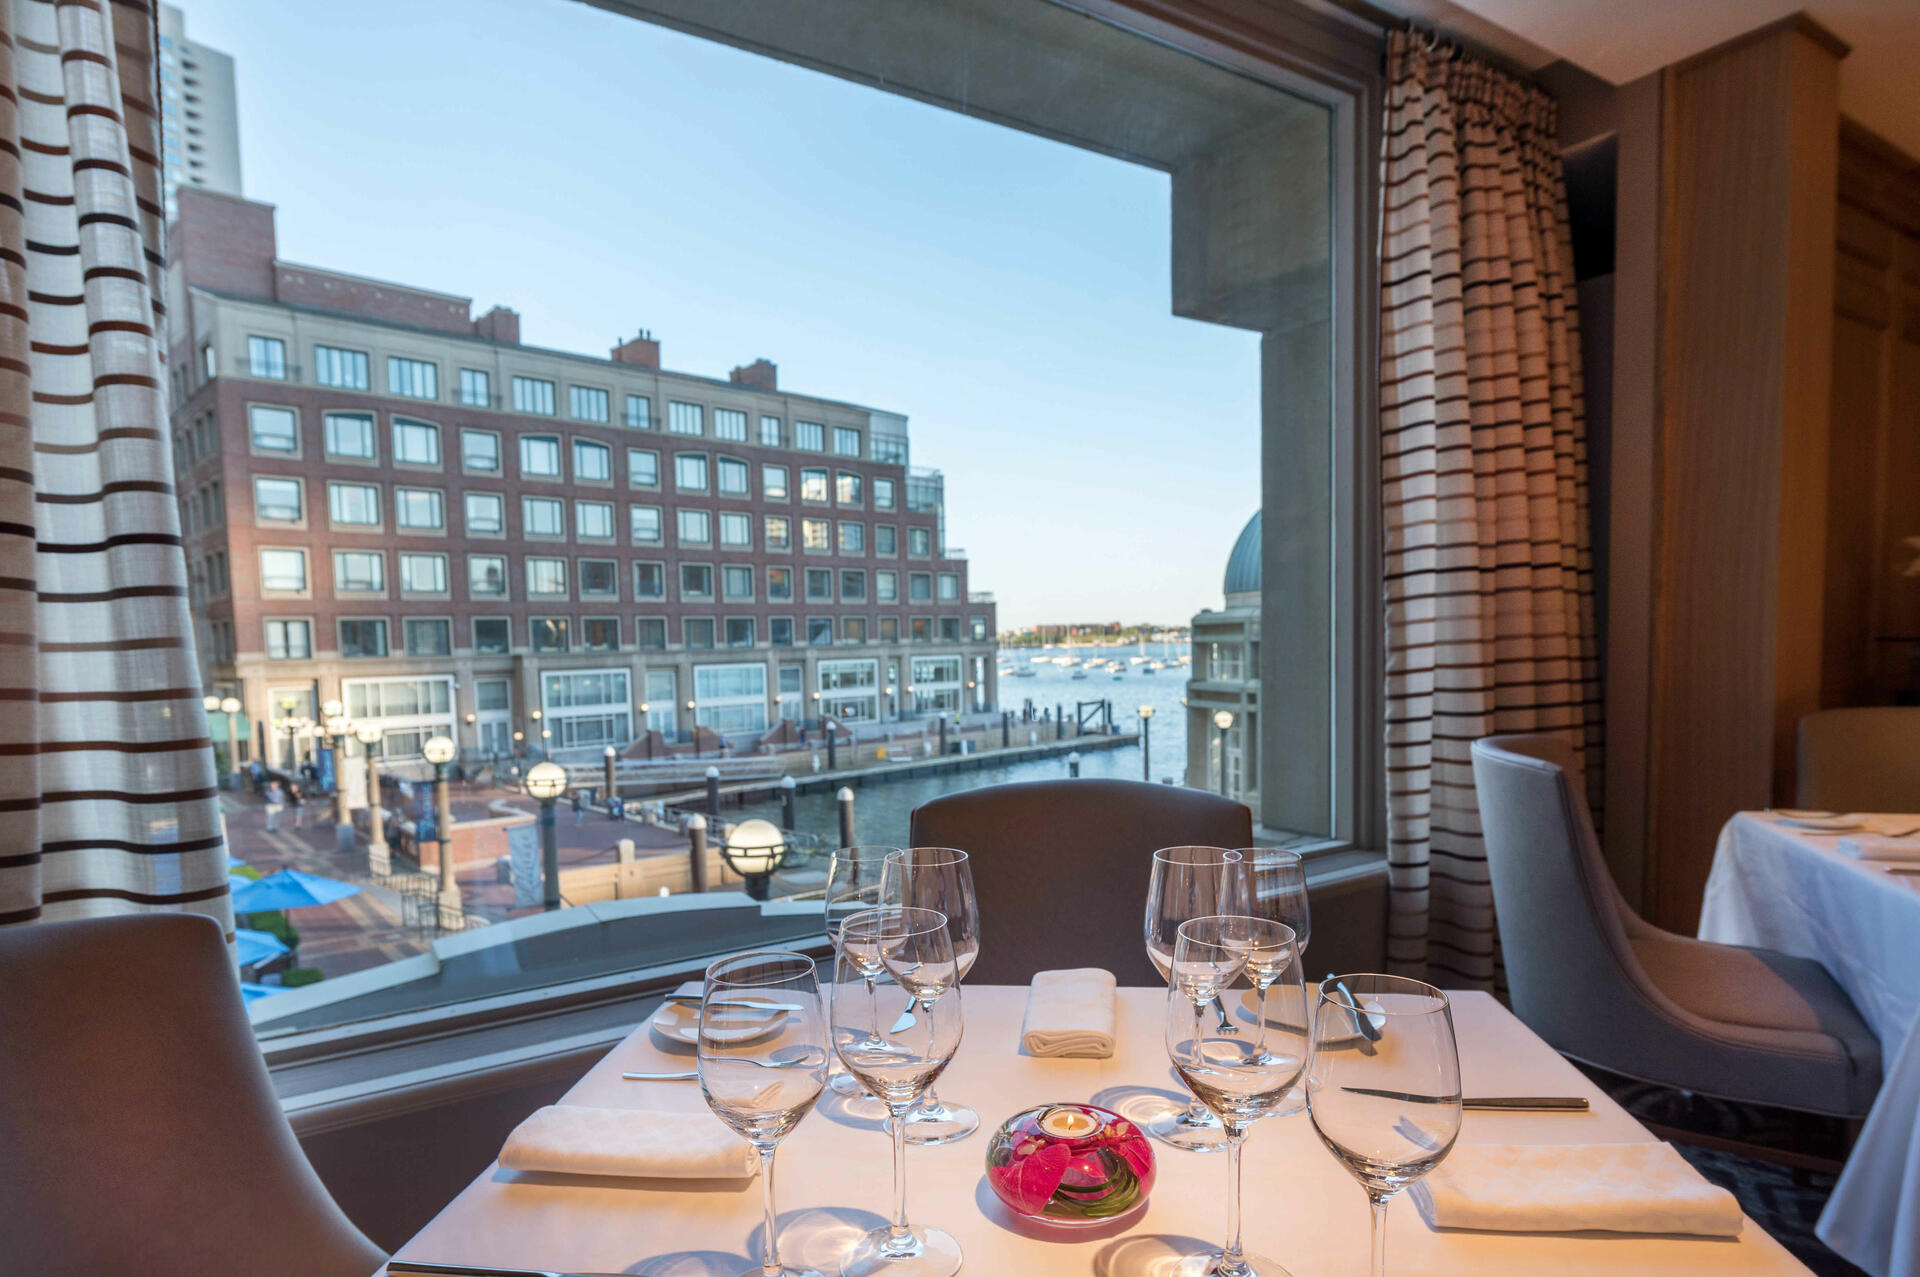 View of the Boston waterfront from inside Meritage The Restauran